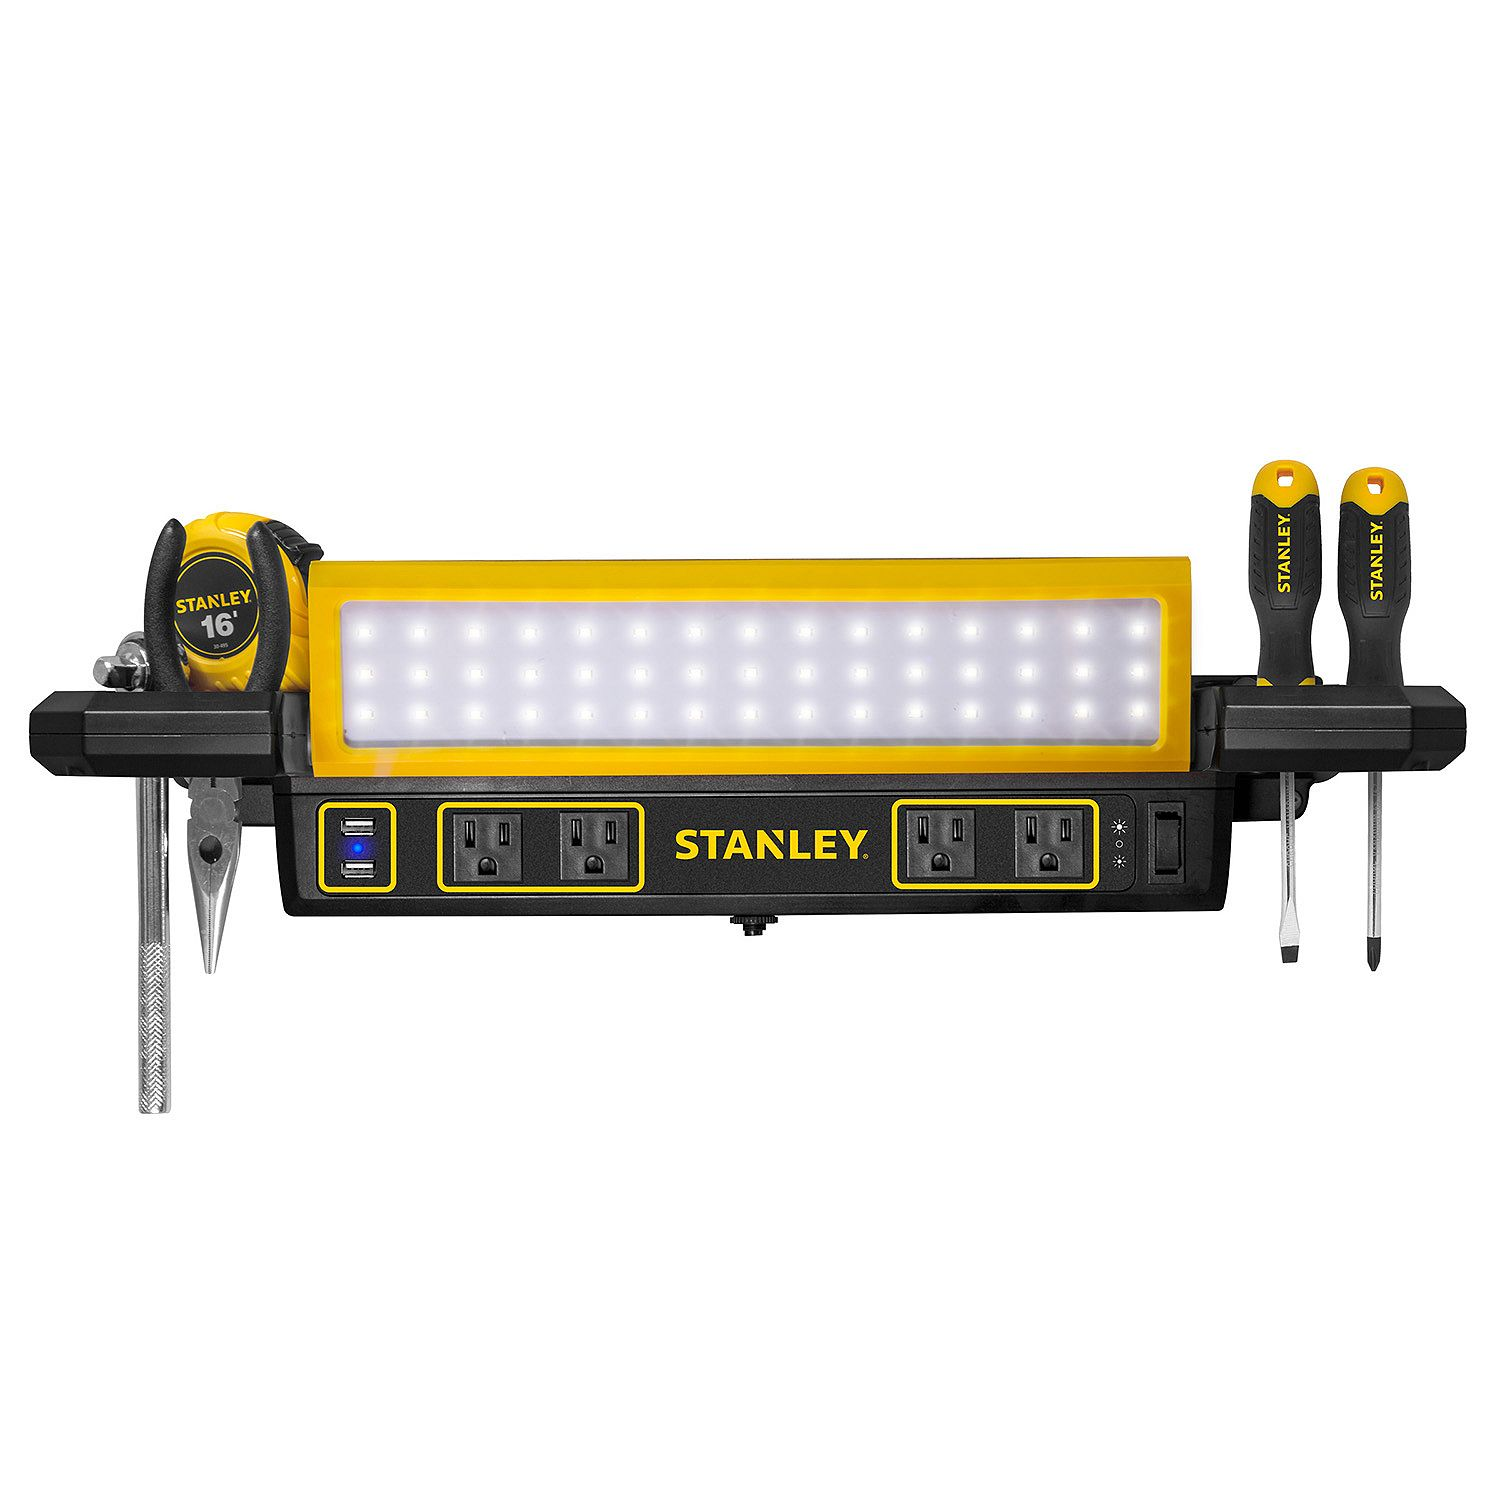 Stanley Workbench LED Light And Power Station, 40 Chip LED Shop Light With  Adjustable